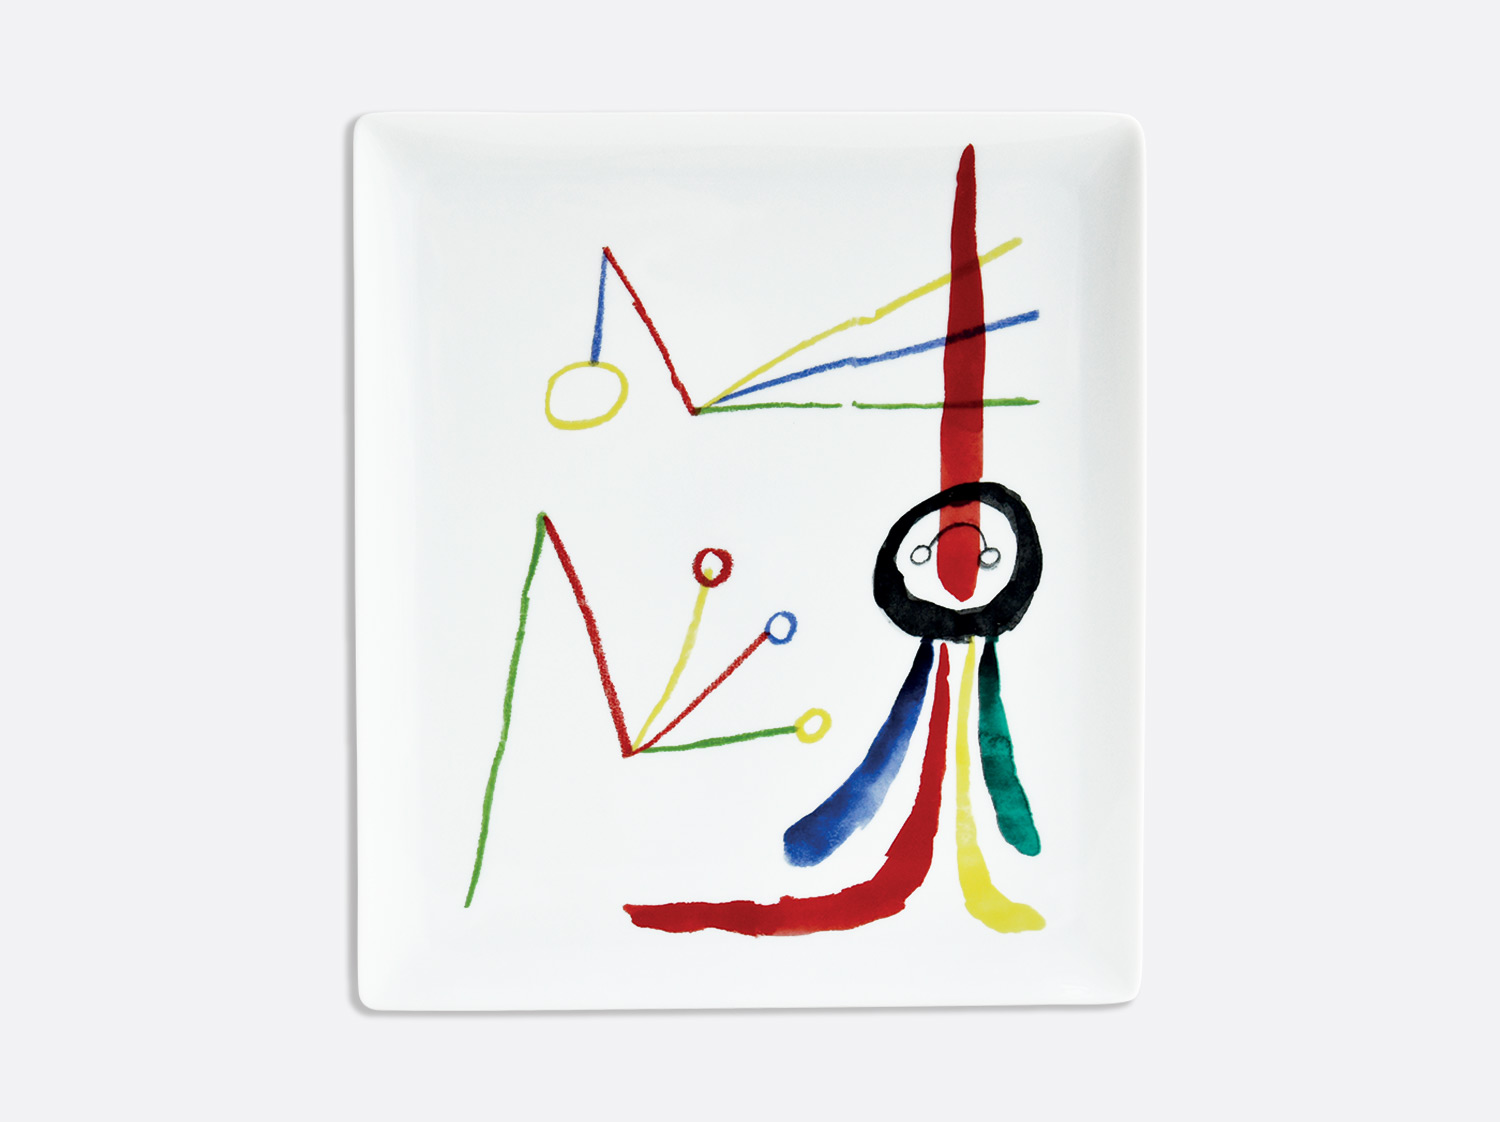 Plateau rectangulaire 26,5 x 23,5 cm en porcelaine de la collection A TOUTE EPREUVE - JOAN MIRO Bernardaud